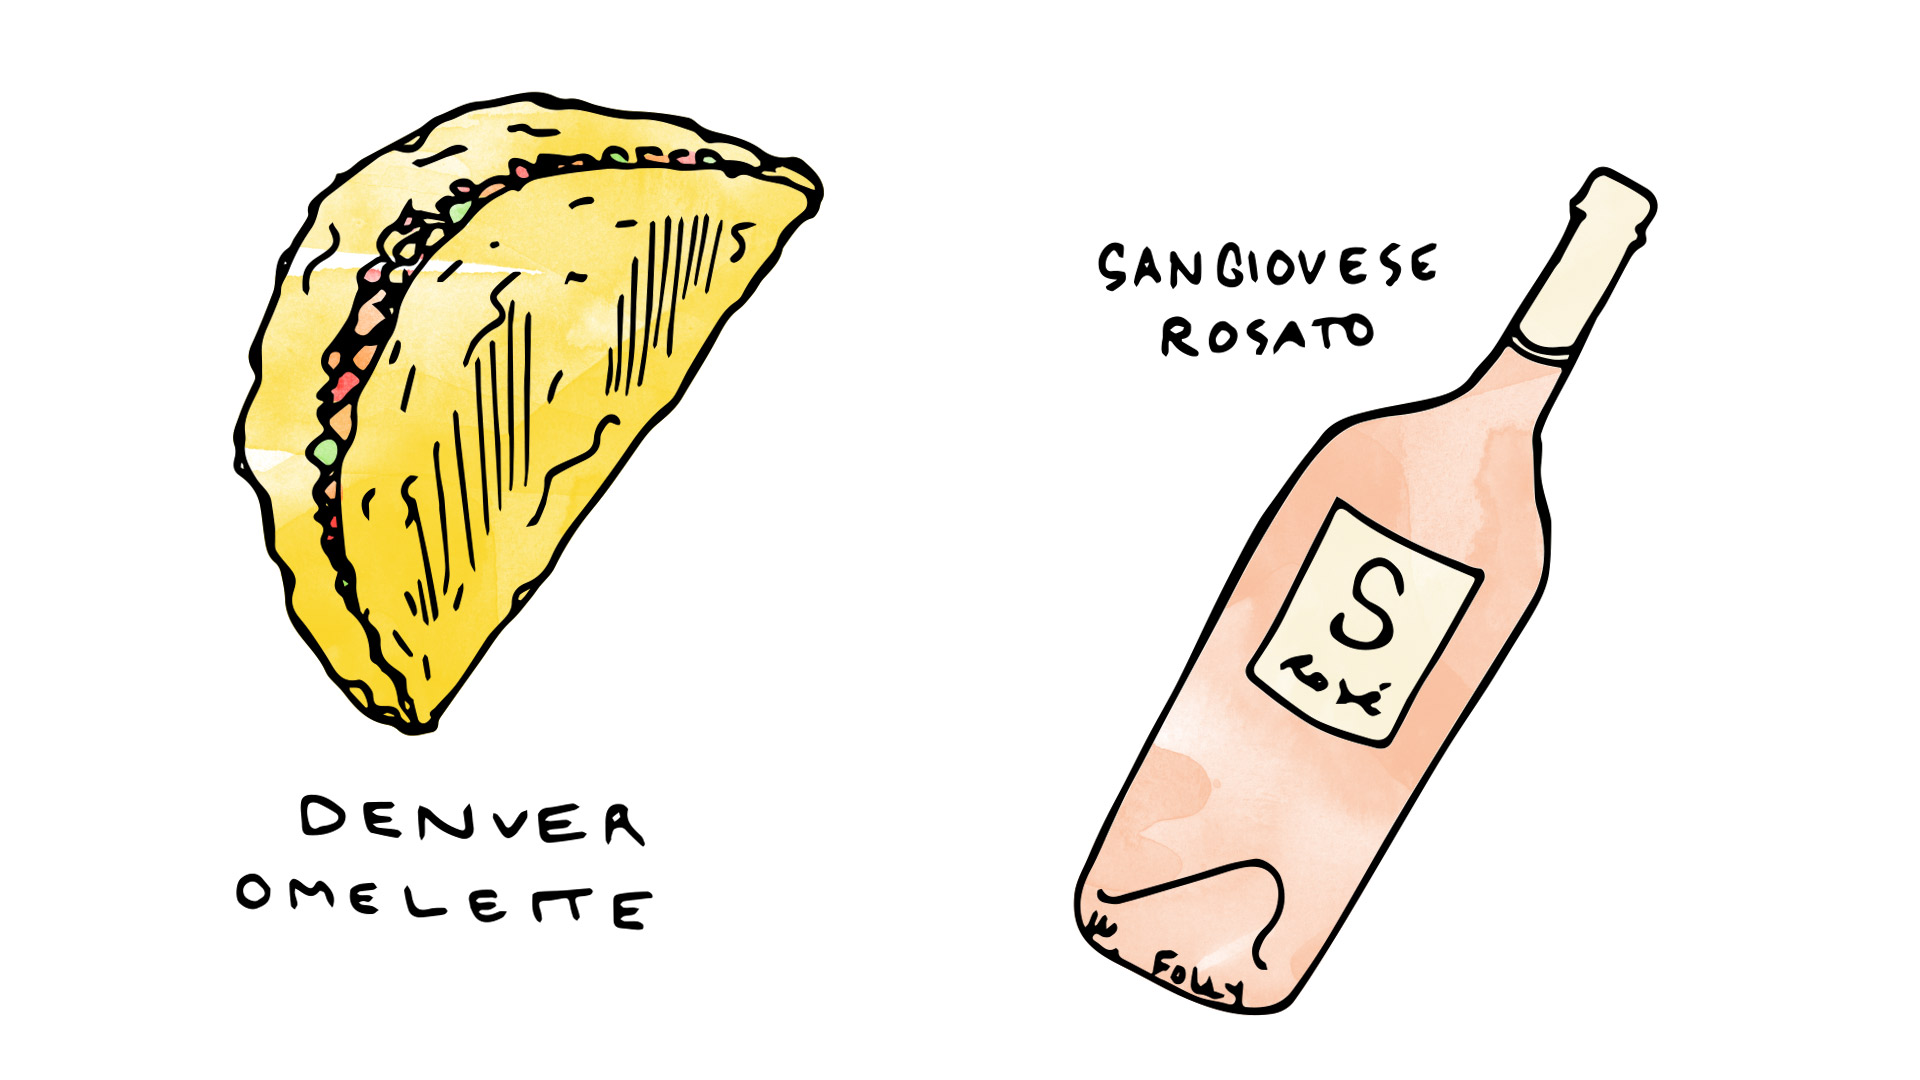 Denver Omelette wine pairing with sangiovese rose illustration by Wine Folly